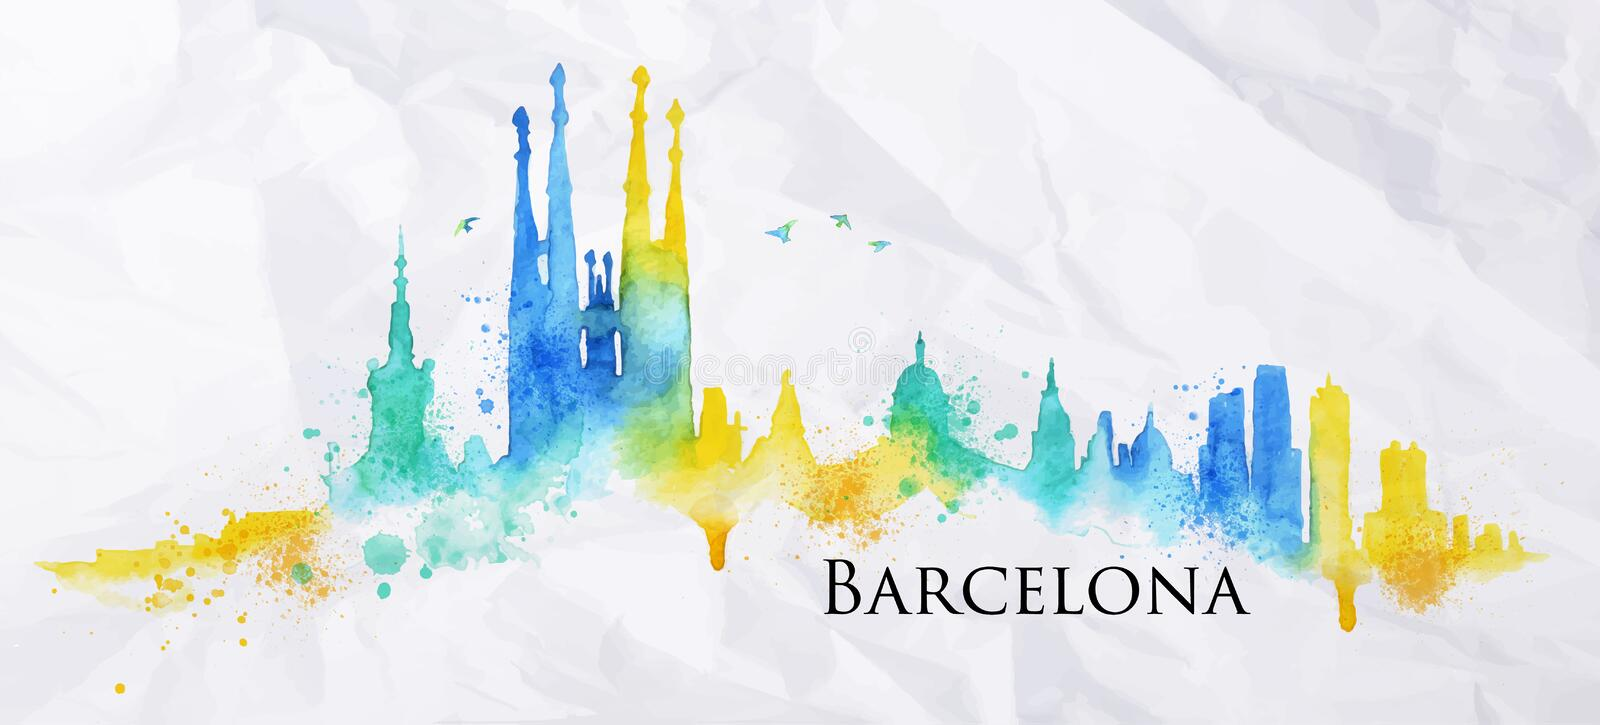 Aquarelle Barcelone de silhouette illustration de vecteur